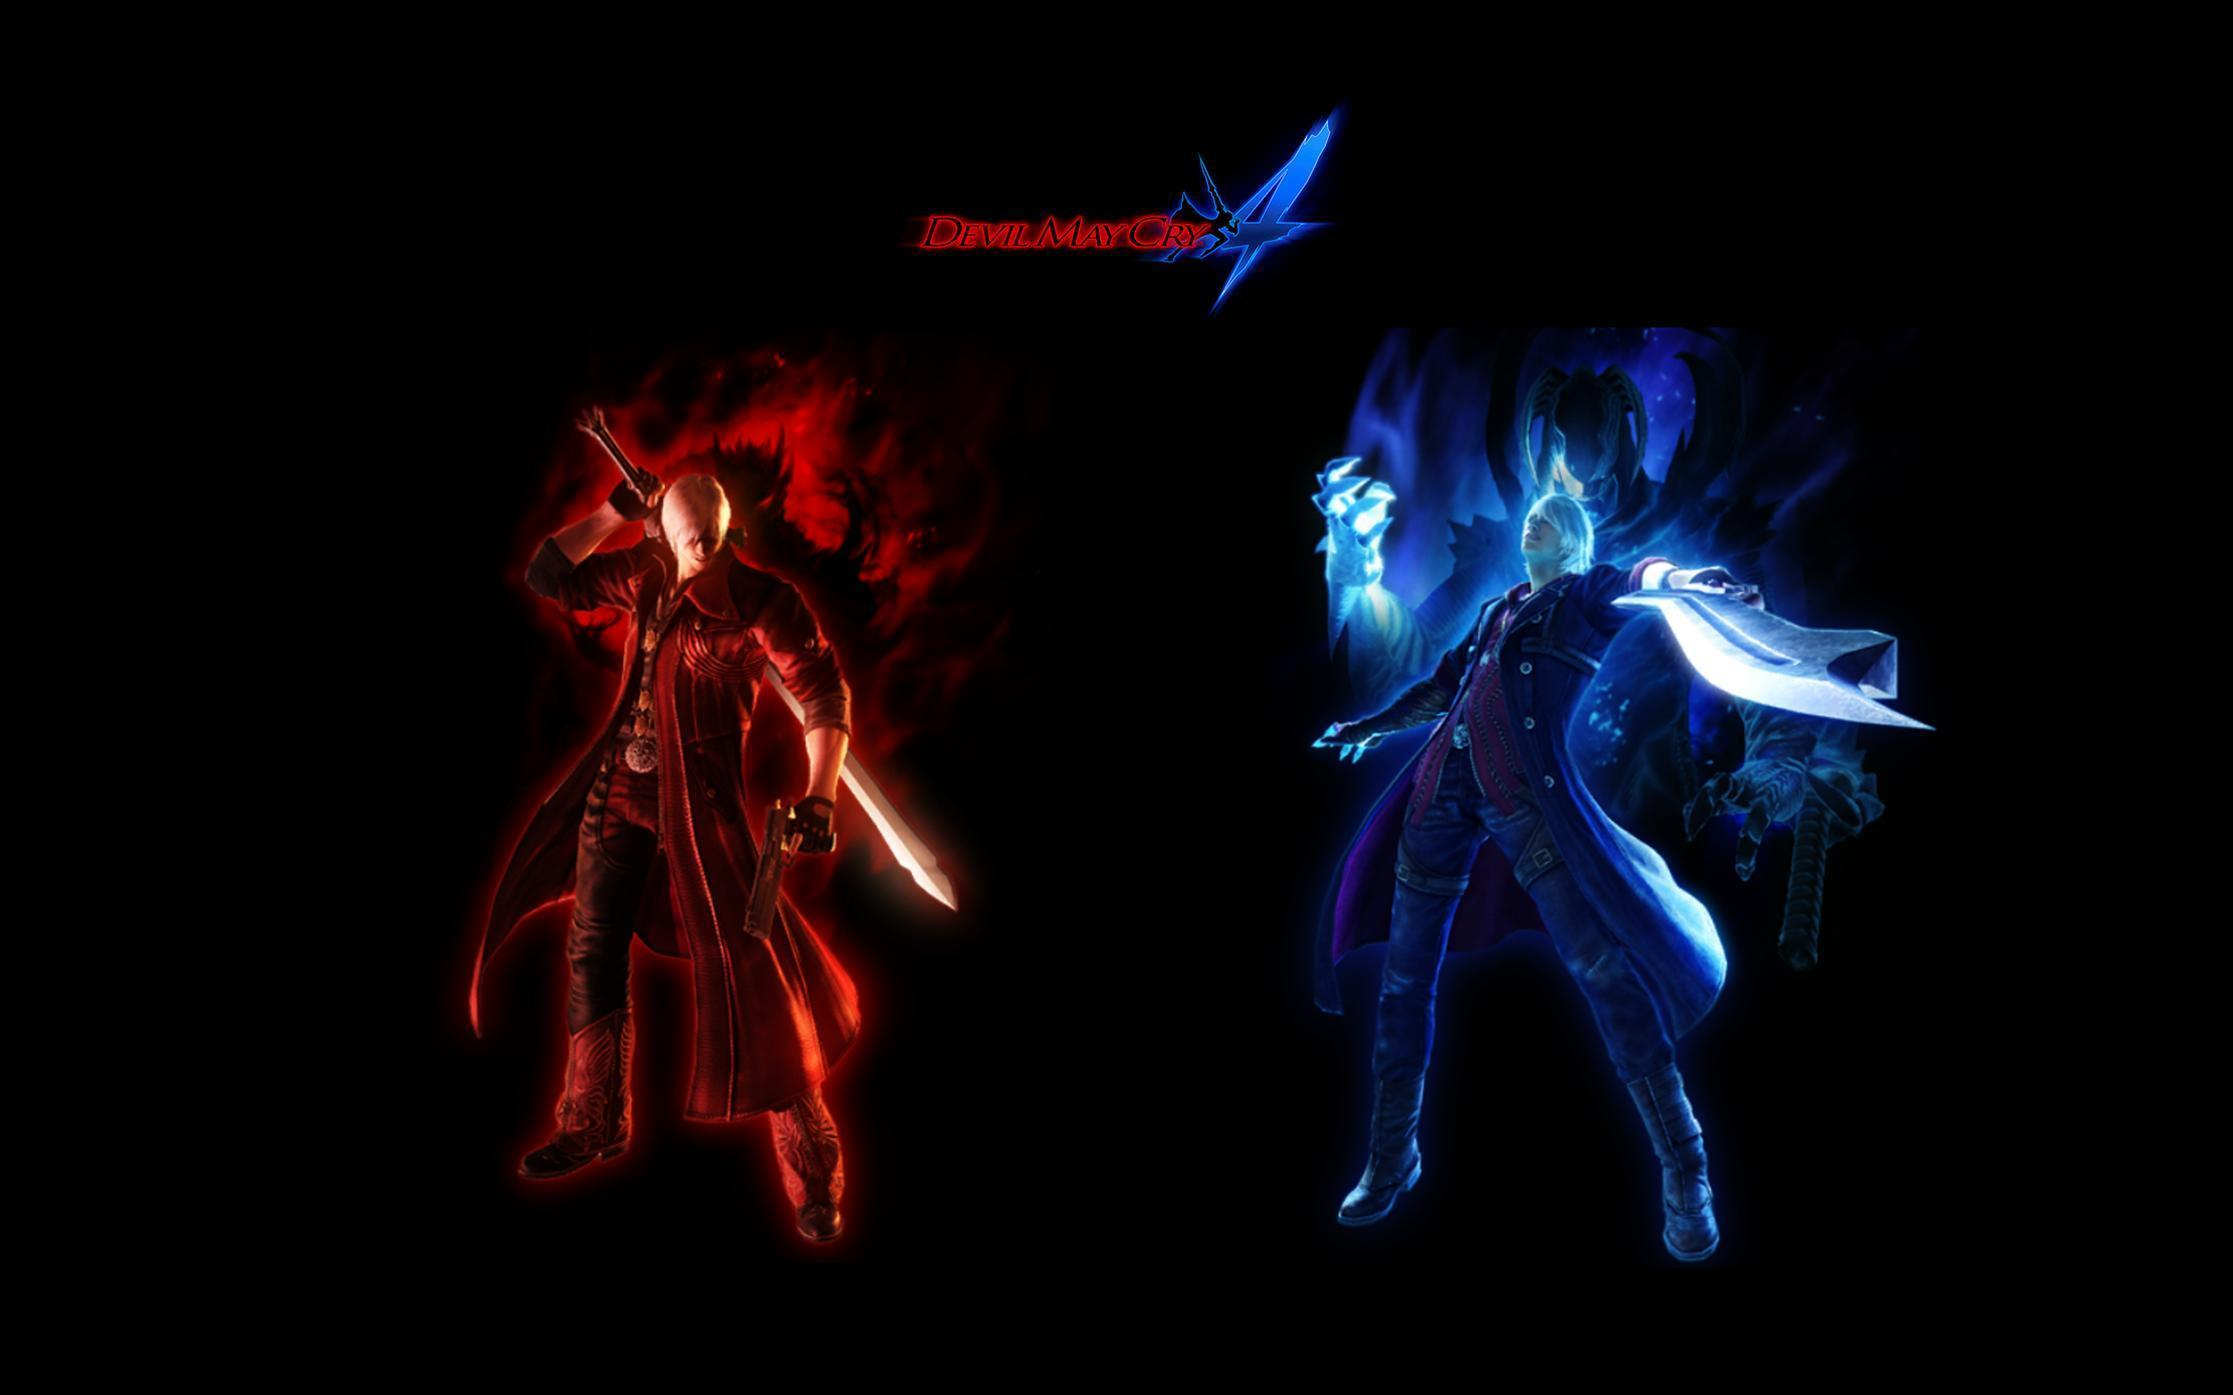 wallpapers devil may cry - photo #23